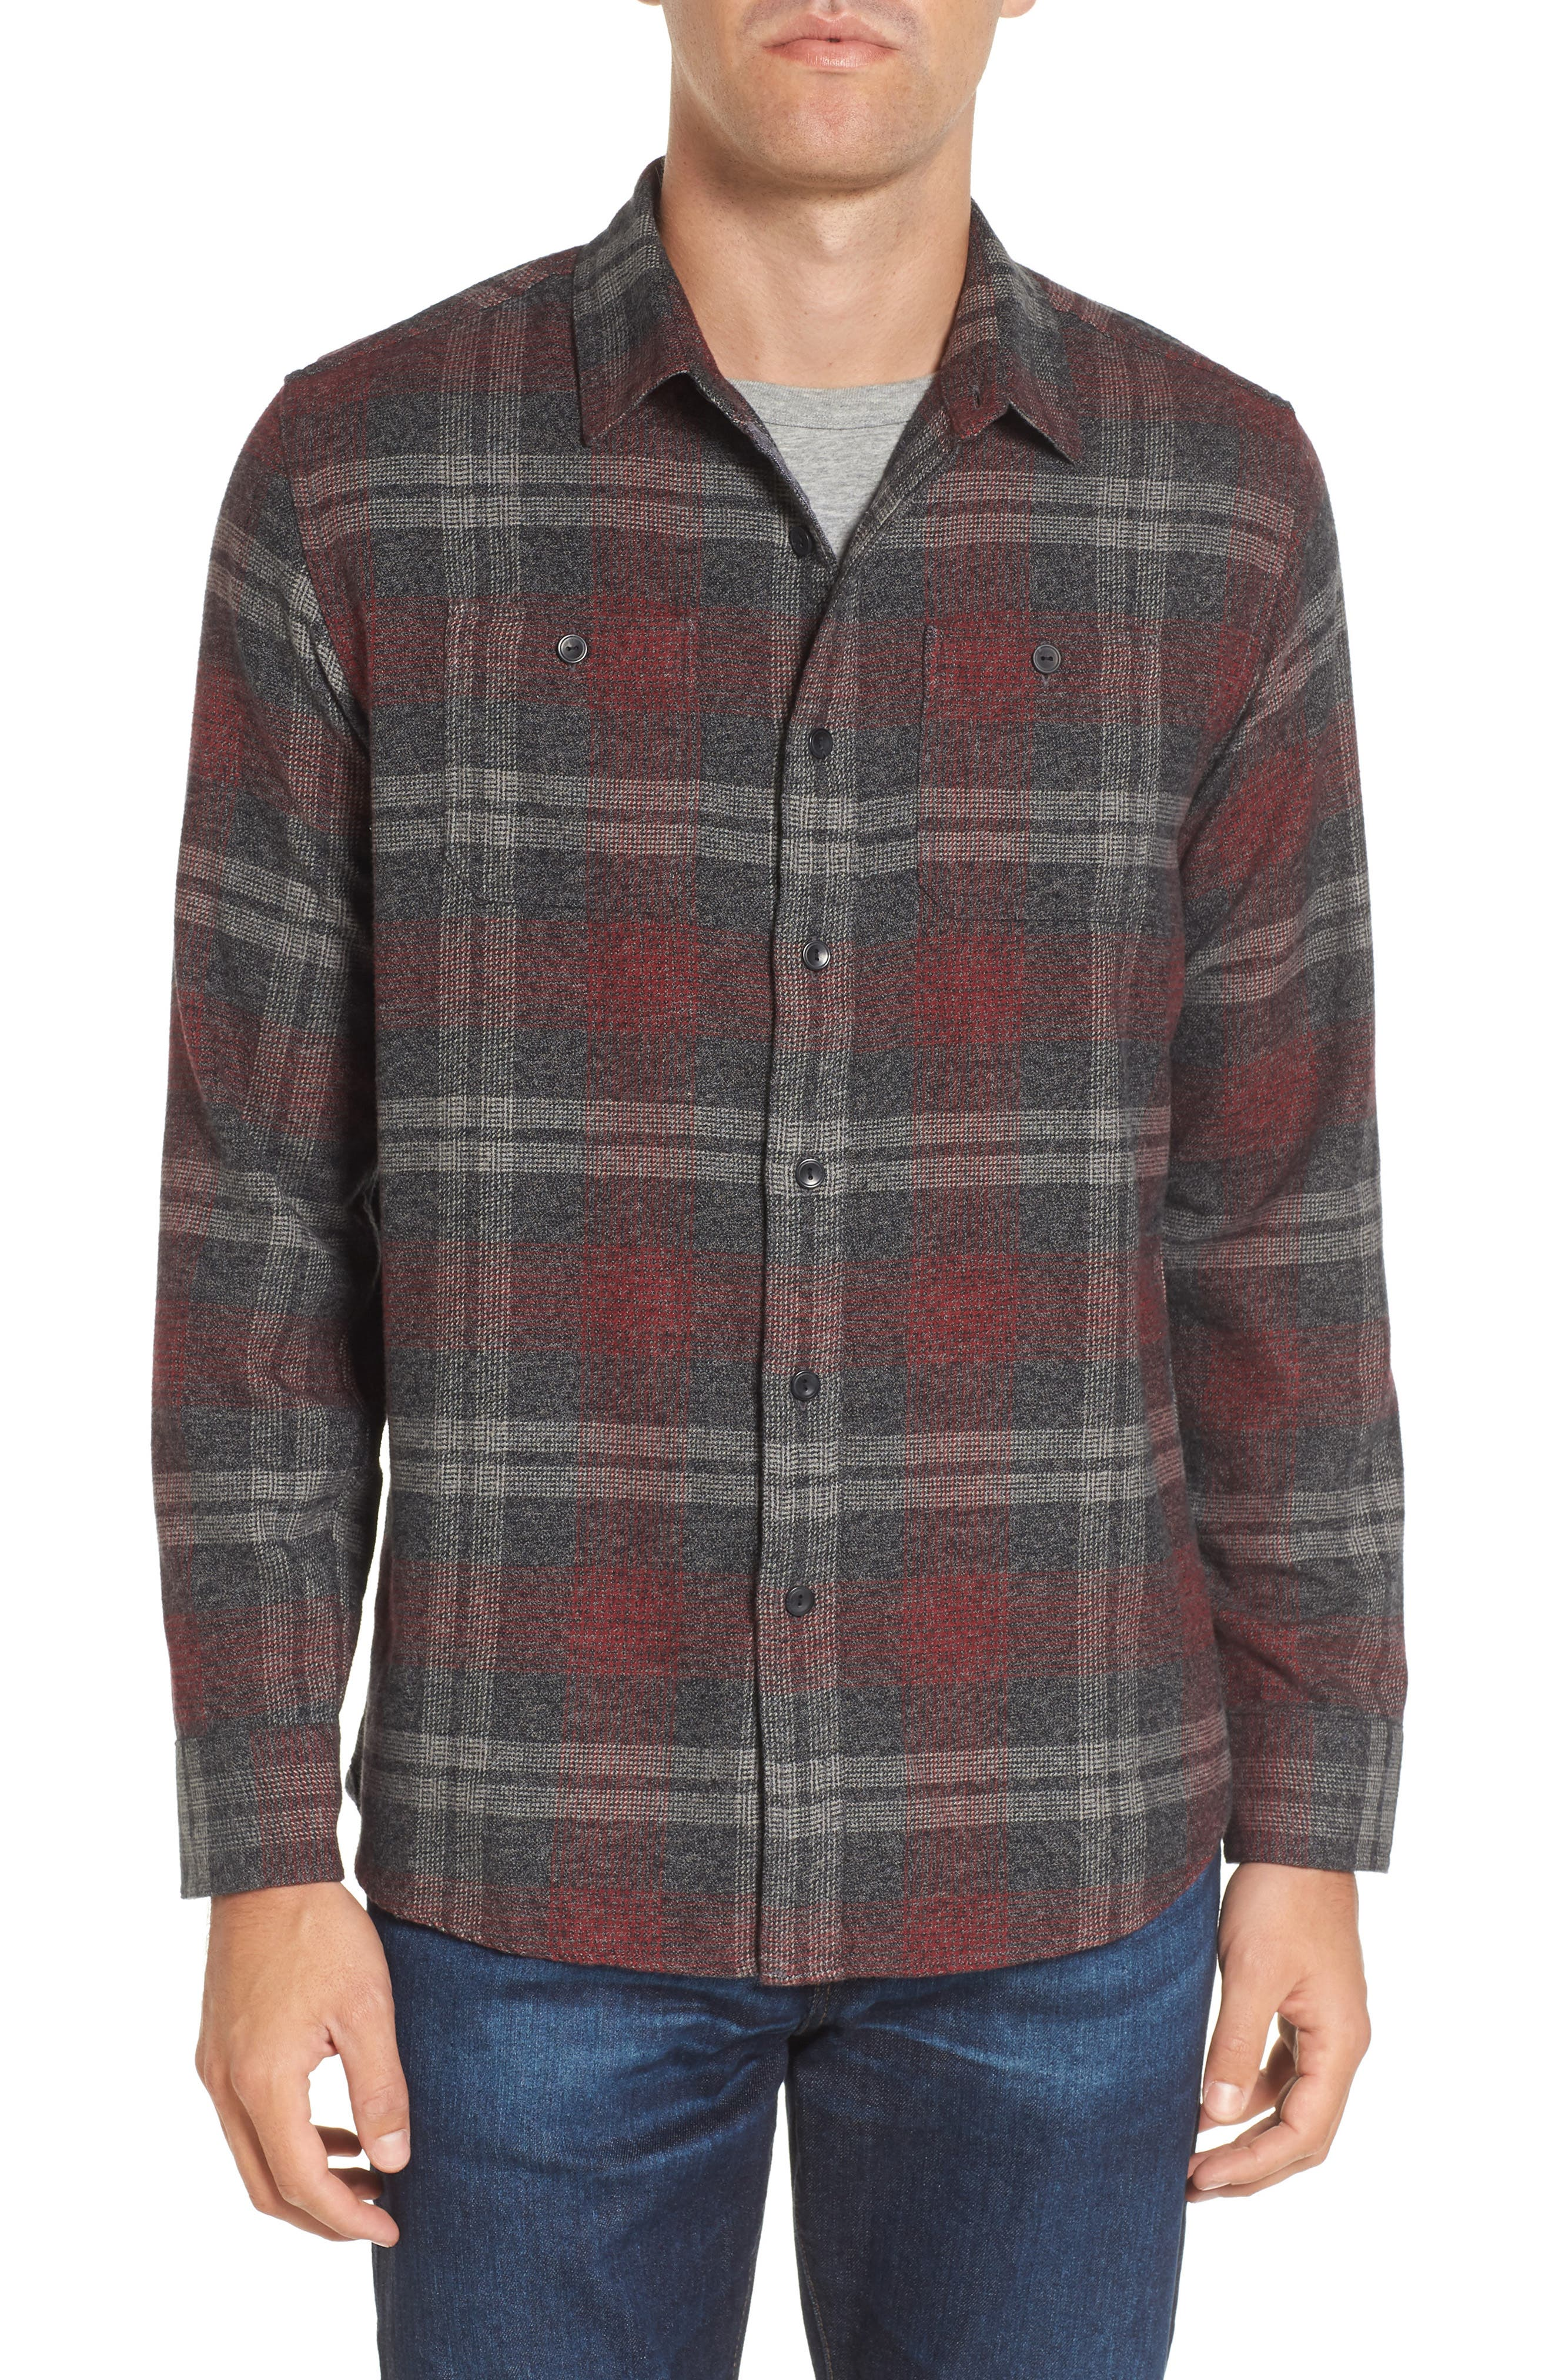 Marston Lux Plaid Flannel Shirt,                             Main thumbnail 1, color,                             Charcoal Burgundy